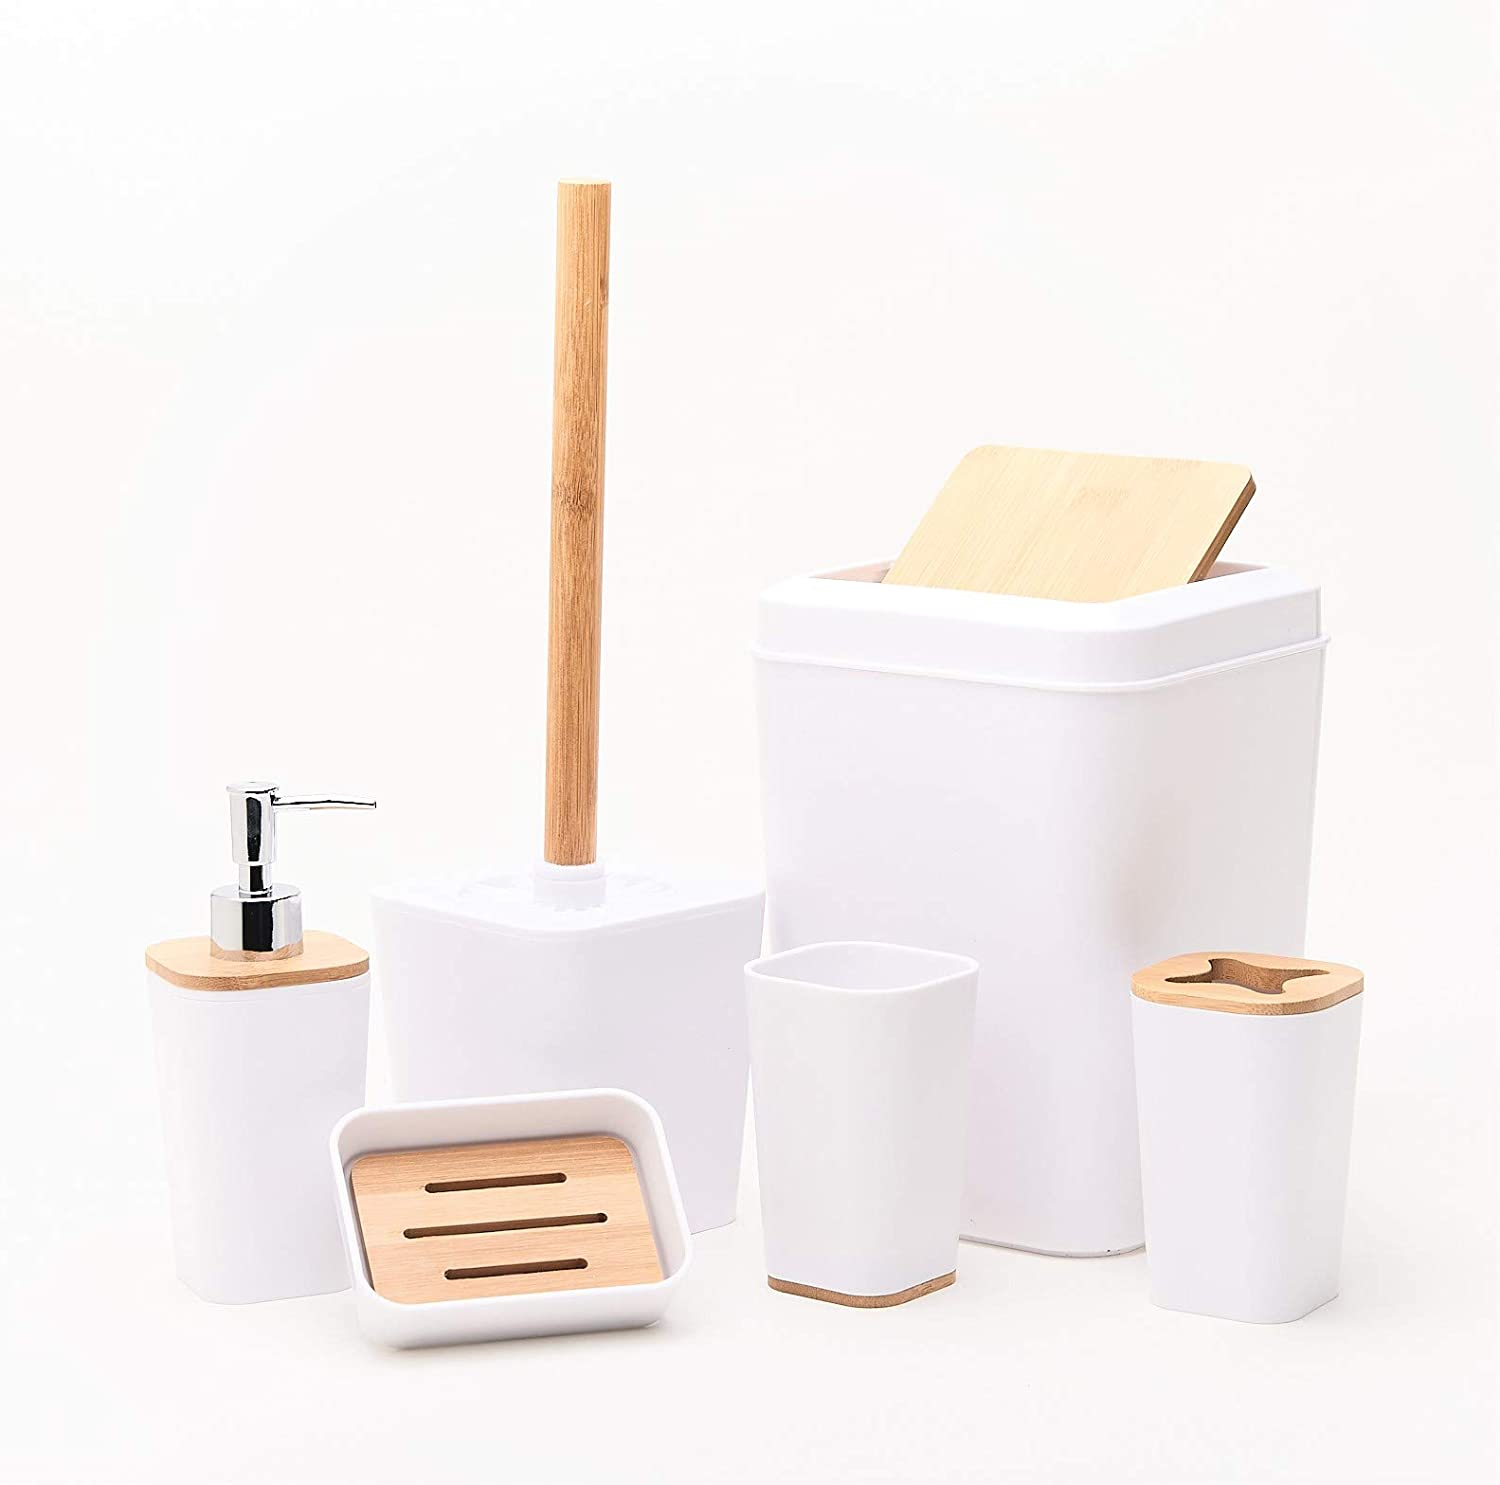 Ranking TOP8 KRALIX Bathroom Set 6 Toothb Accessories Plastic 70% OFF Outlet Pieces